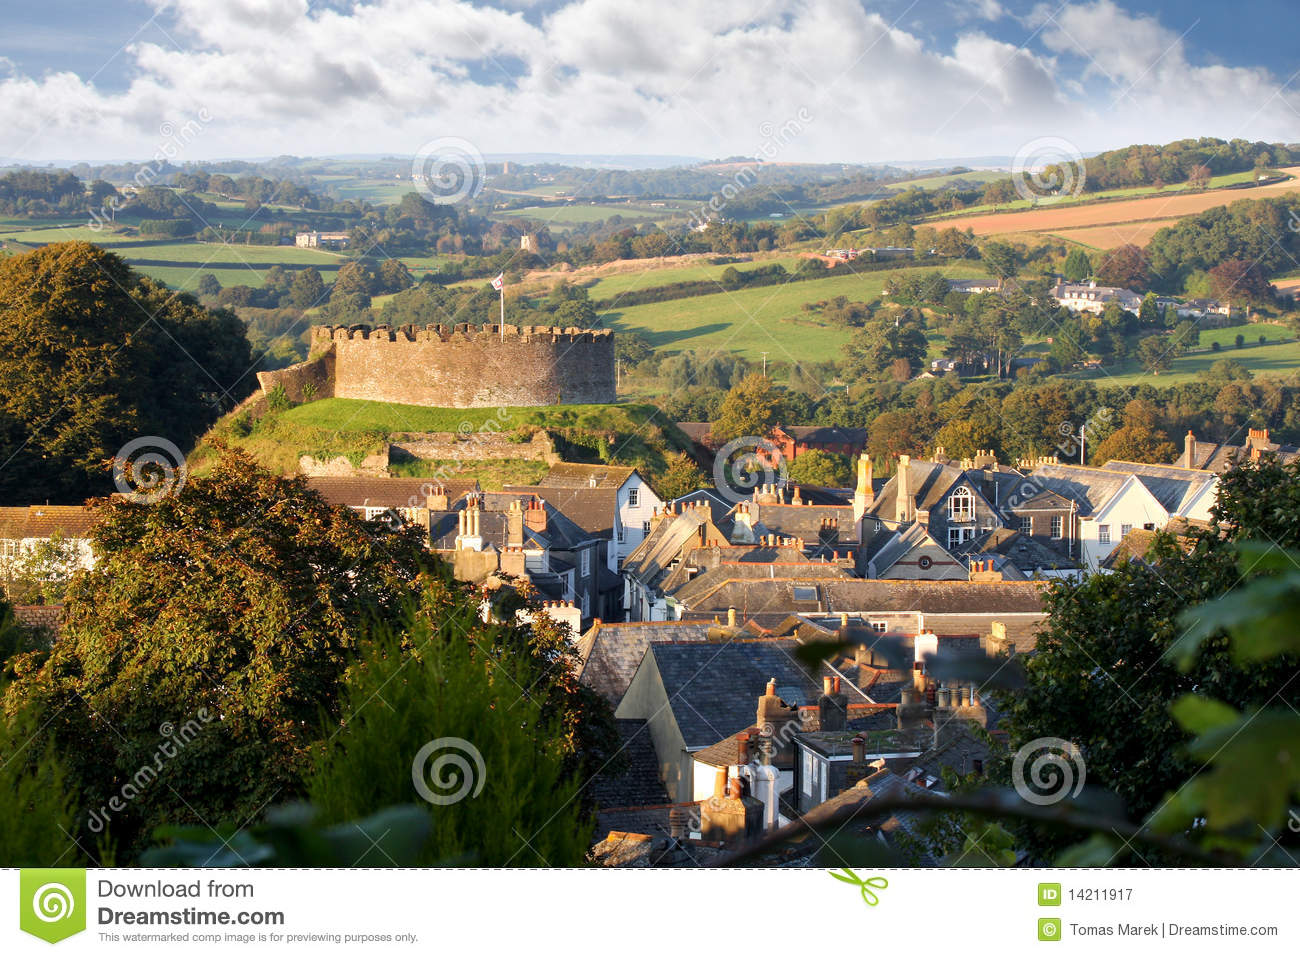 Panorama of Totnes with castle, Devon, England